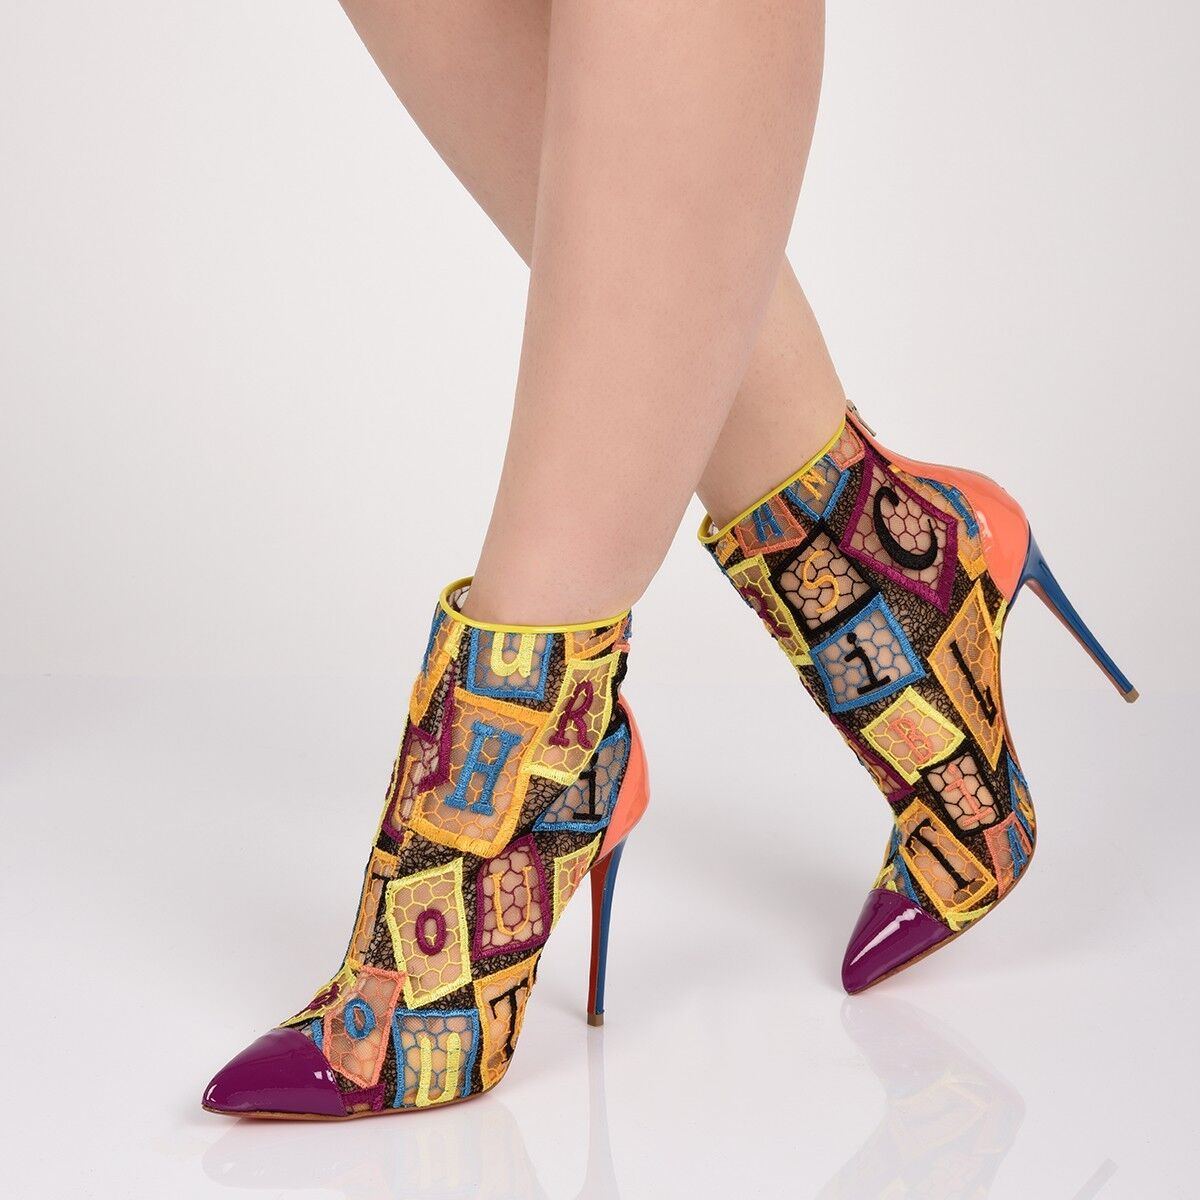 LOUBOUTIN GIPSYBOOTIE 100 MULTICOLOR EMBROIDERED NET ANKLE ZIP BOOTS PUMPS 40